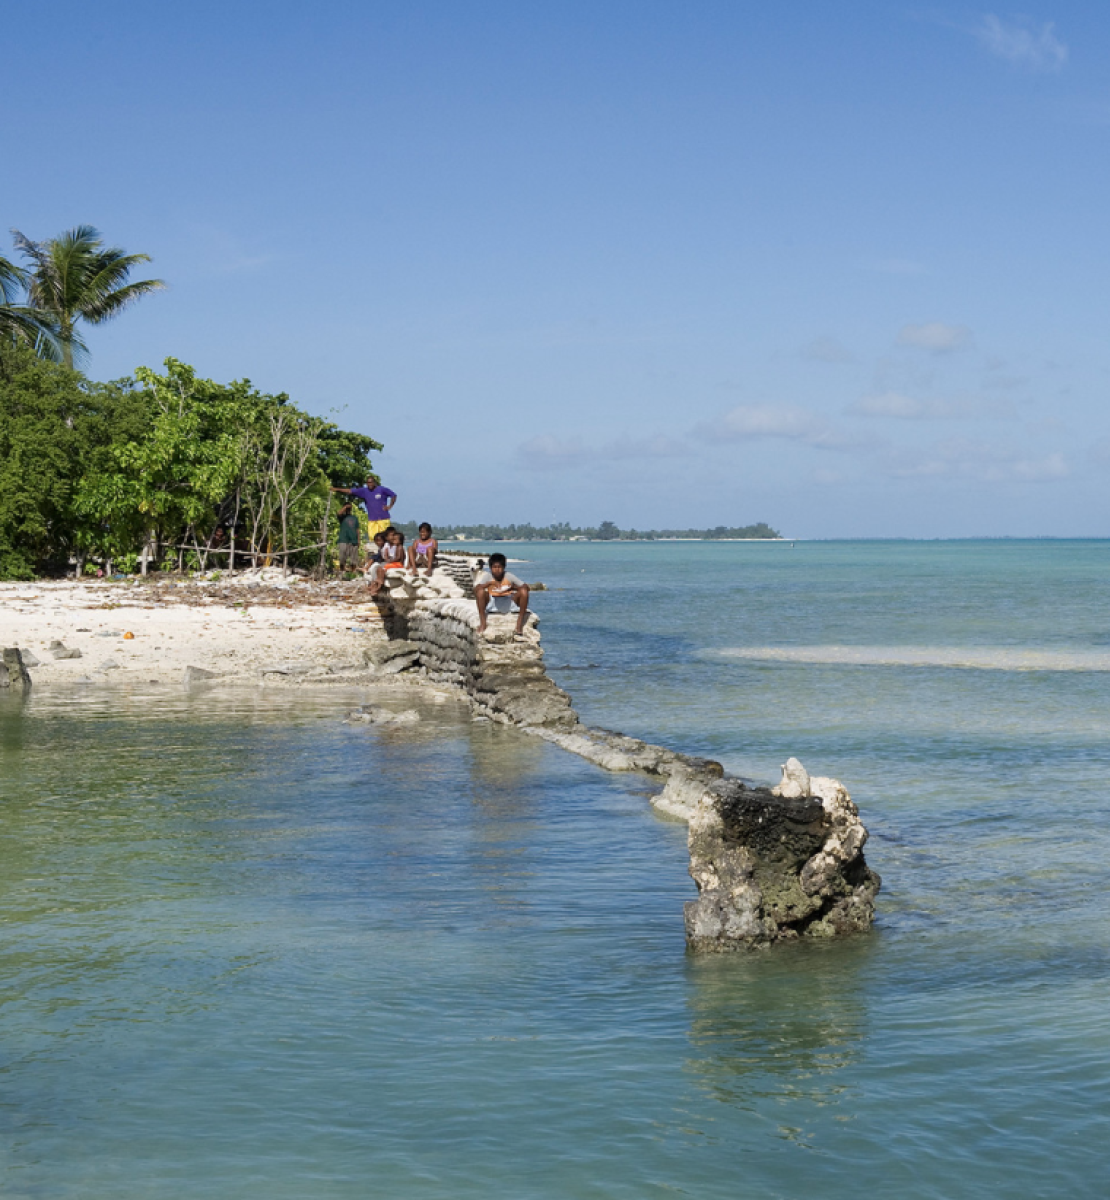 An image of the ocean and several people standing on an island on a sunny day.